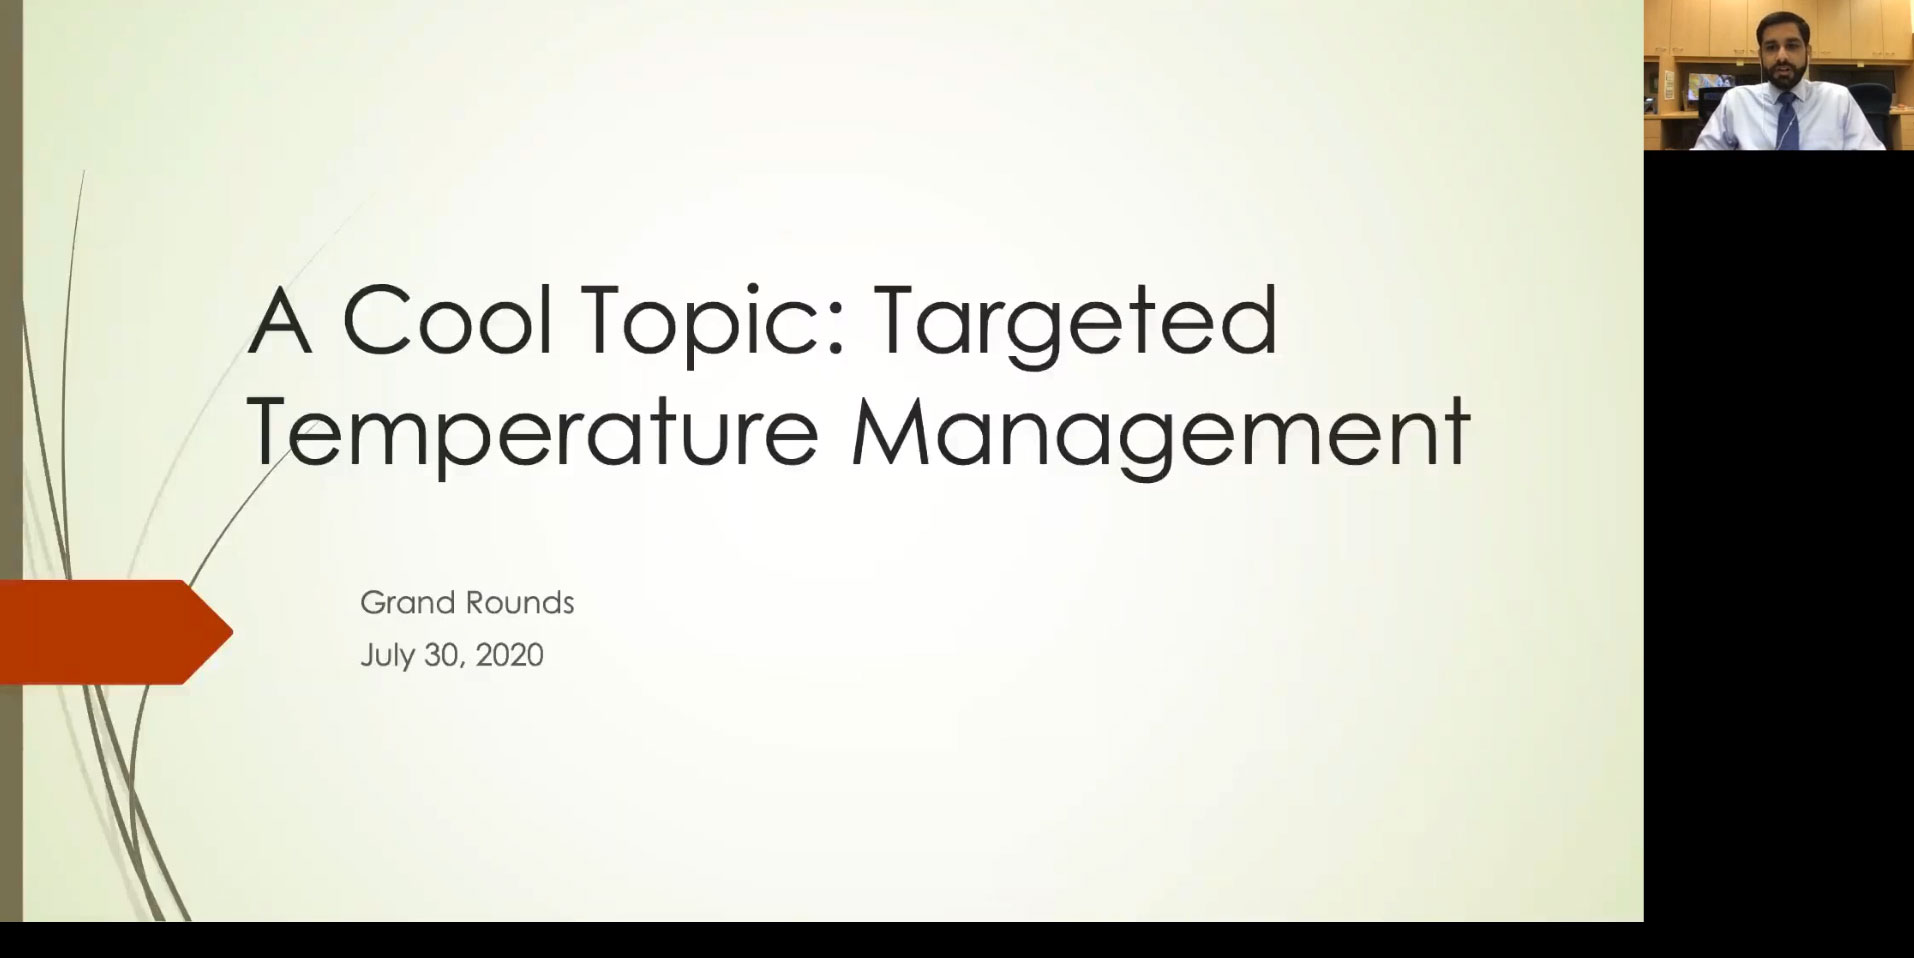 Picture from A Cool Topic: Targeted Temperature Management video